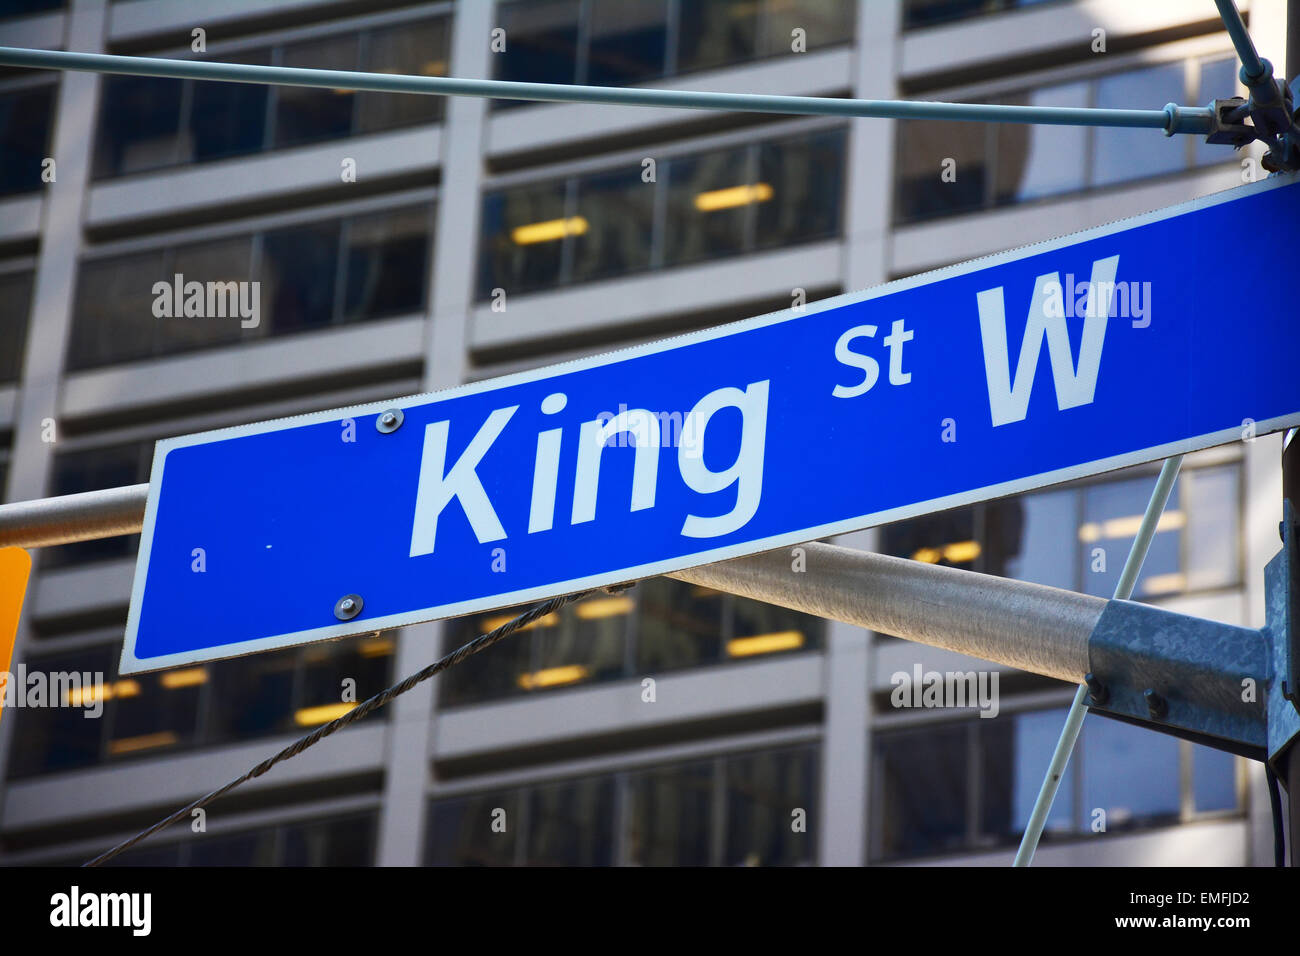 King street, street sign, Toronto, Canada - Stock Image